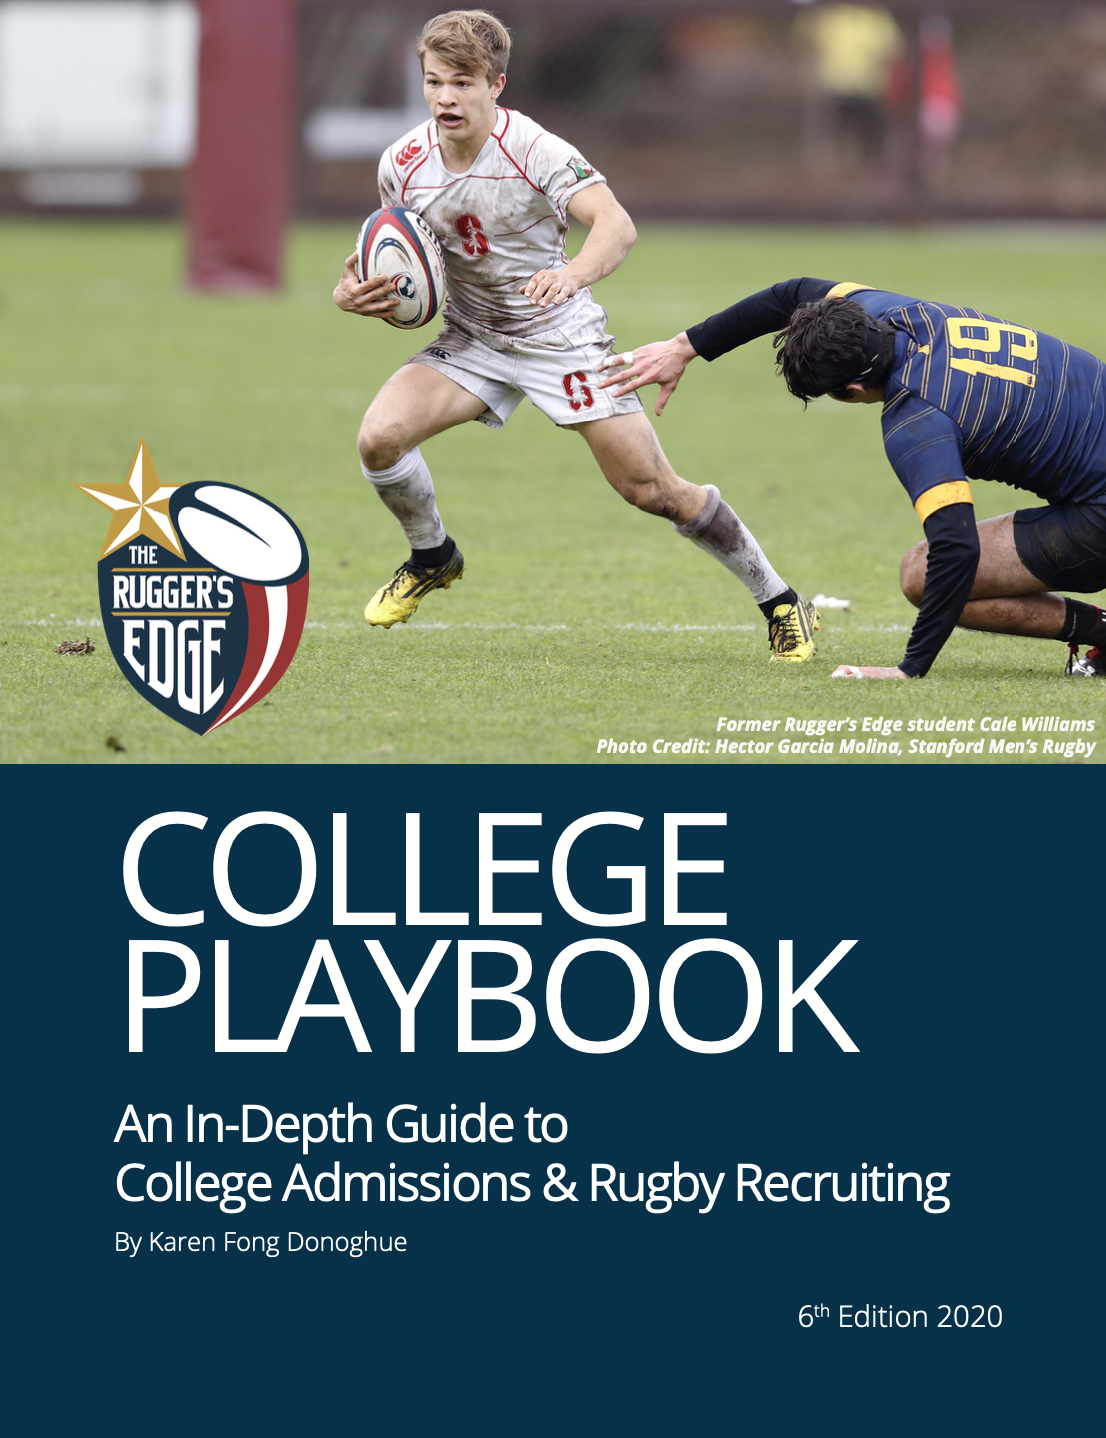 Rugby expert, author Karen Fong Donoghue can help Guam's student-athletes get into college